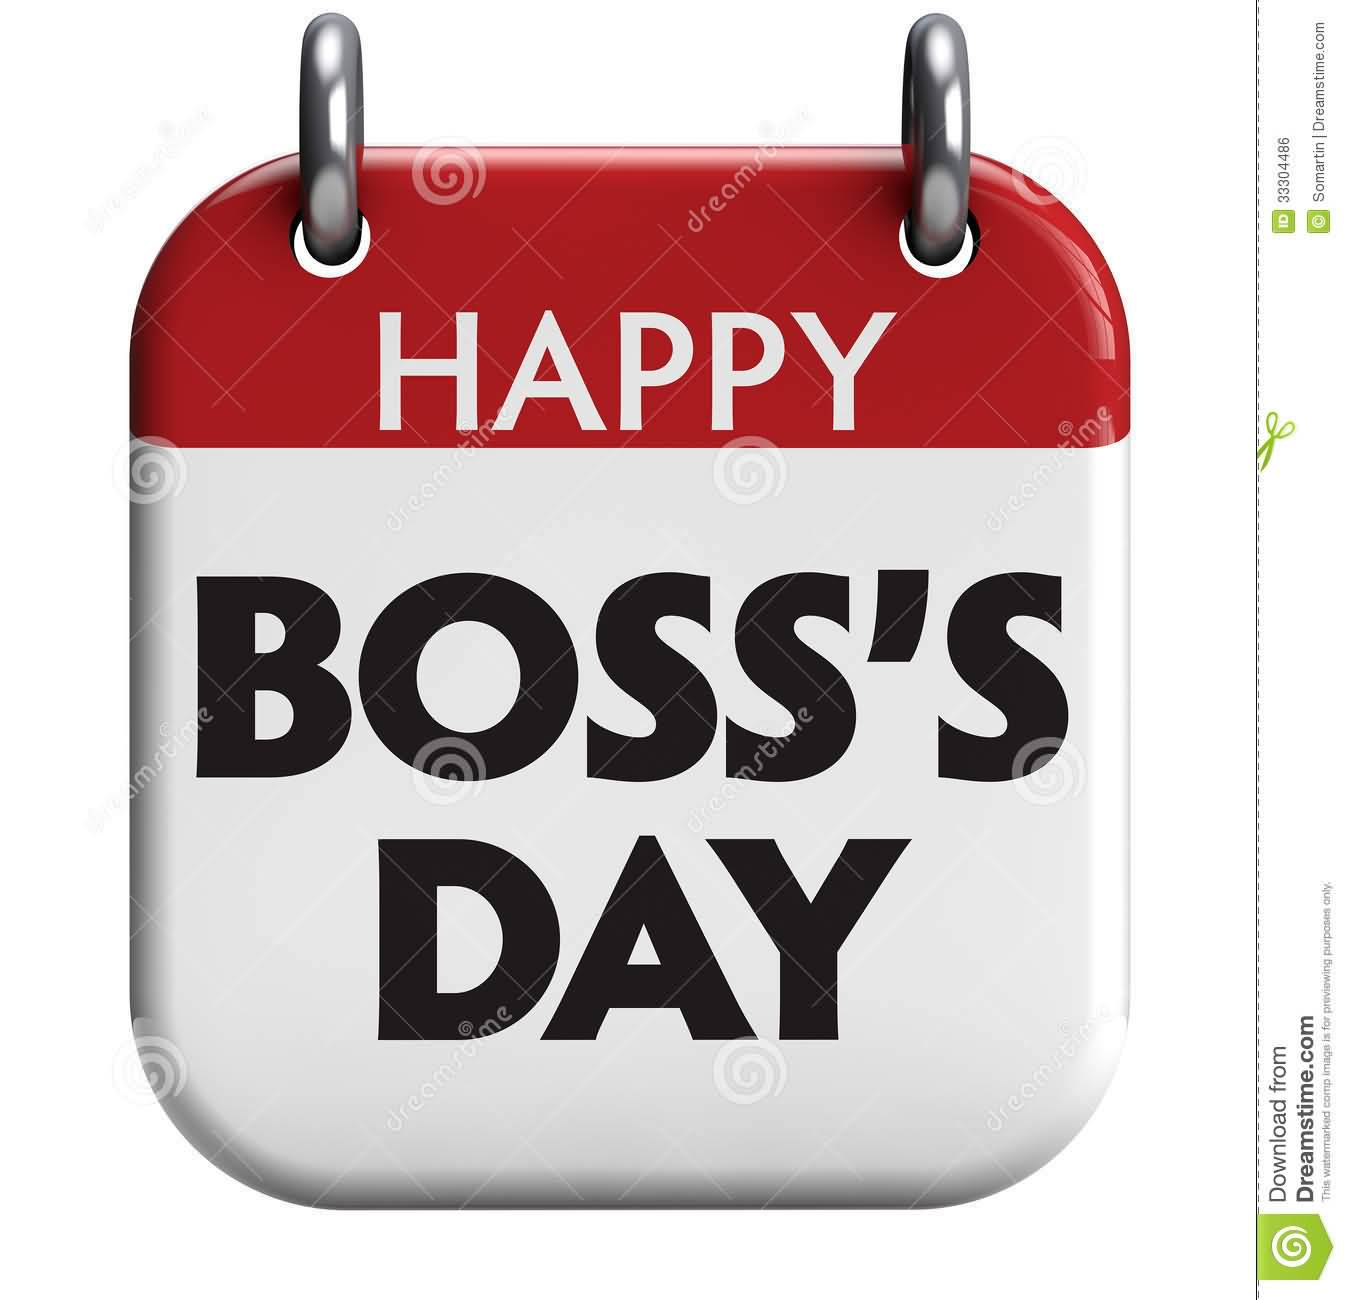 50 Happy Boss's Day Wishes Pictures And Images